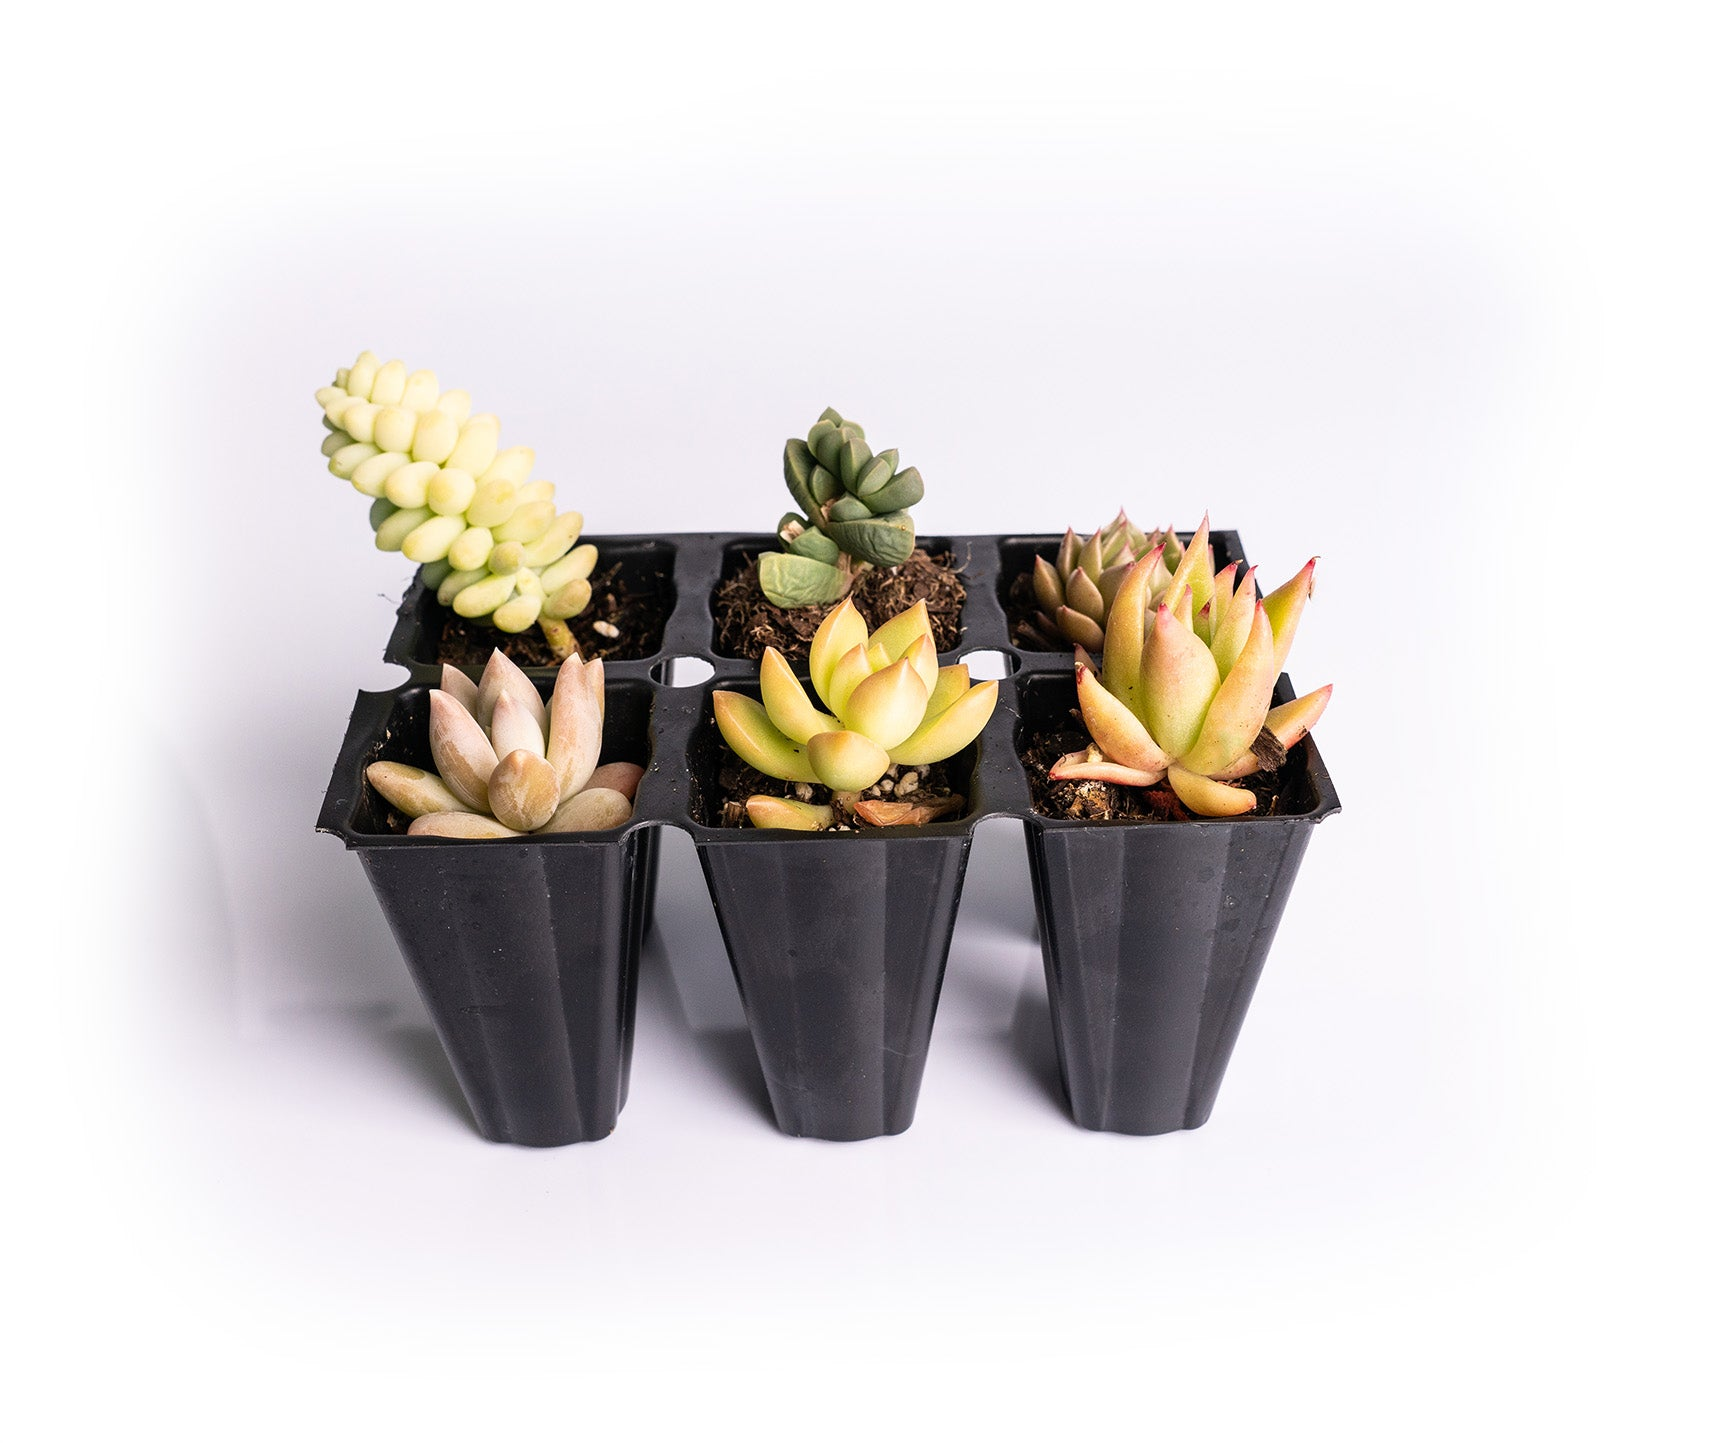 GREEN & YELLOW HUES ASSORTMENT 1.5 Inch (Starting at quantities of 6)